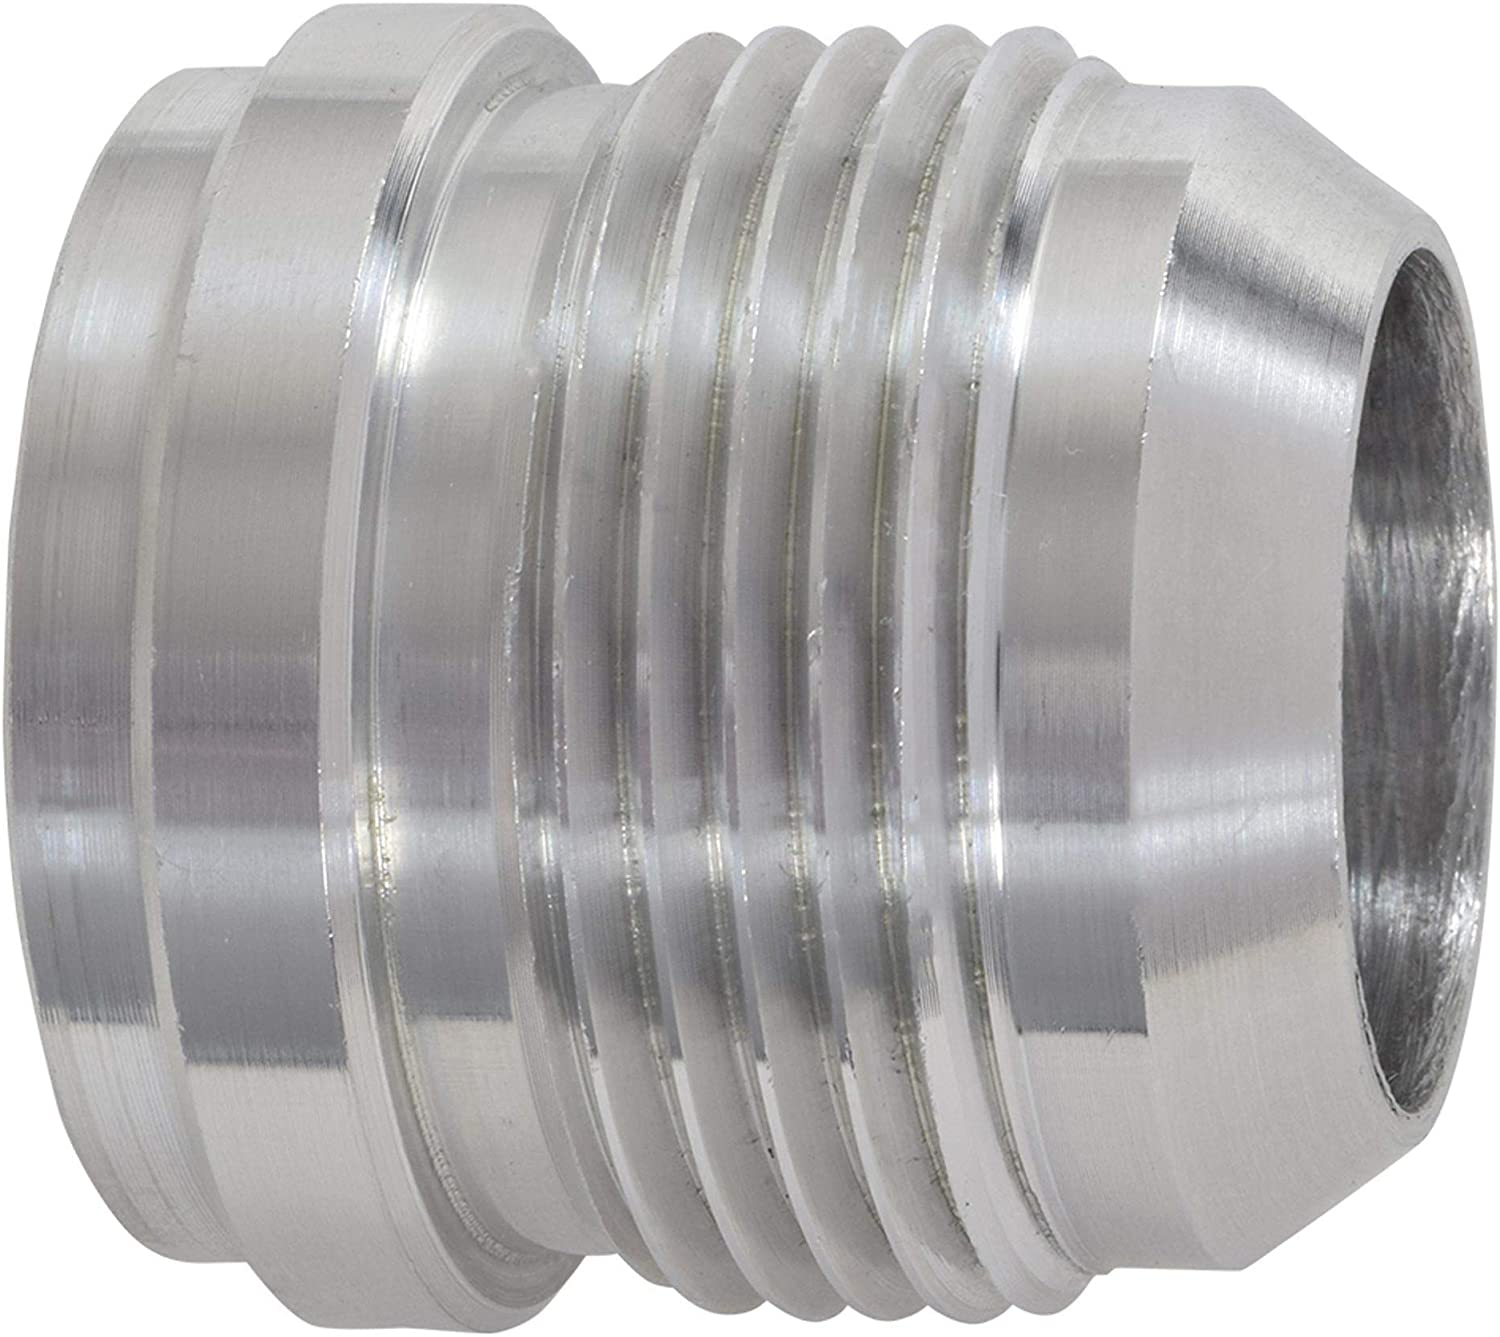 16 AN QTY:2 Stainless Steel WELD ON 2 PCS WELD IN FITTING BUNG AN16